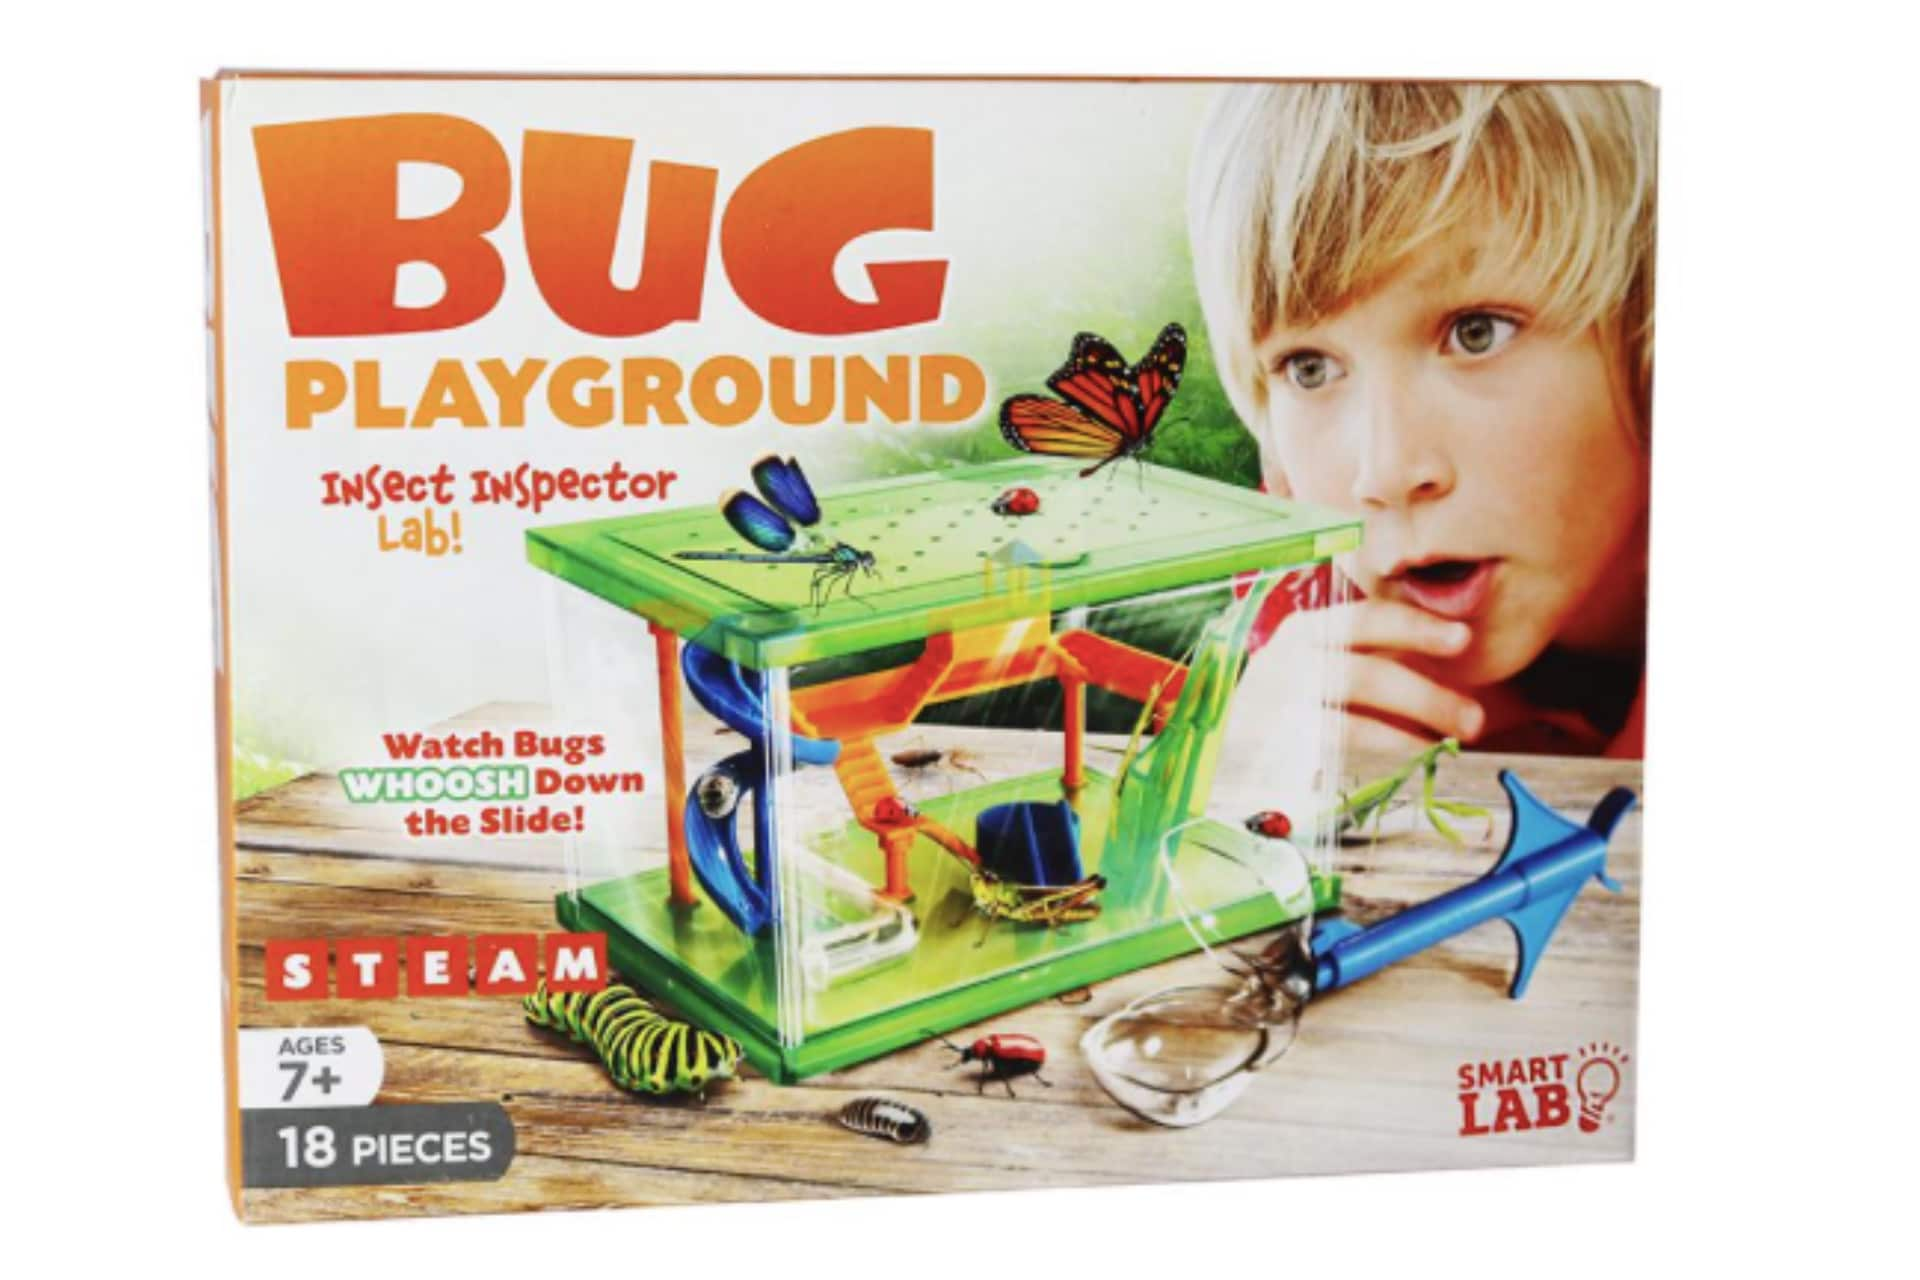 Box featuring green and orange bug playground toy